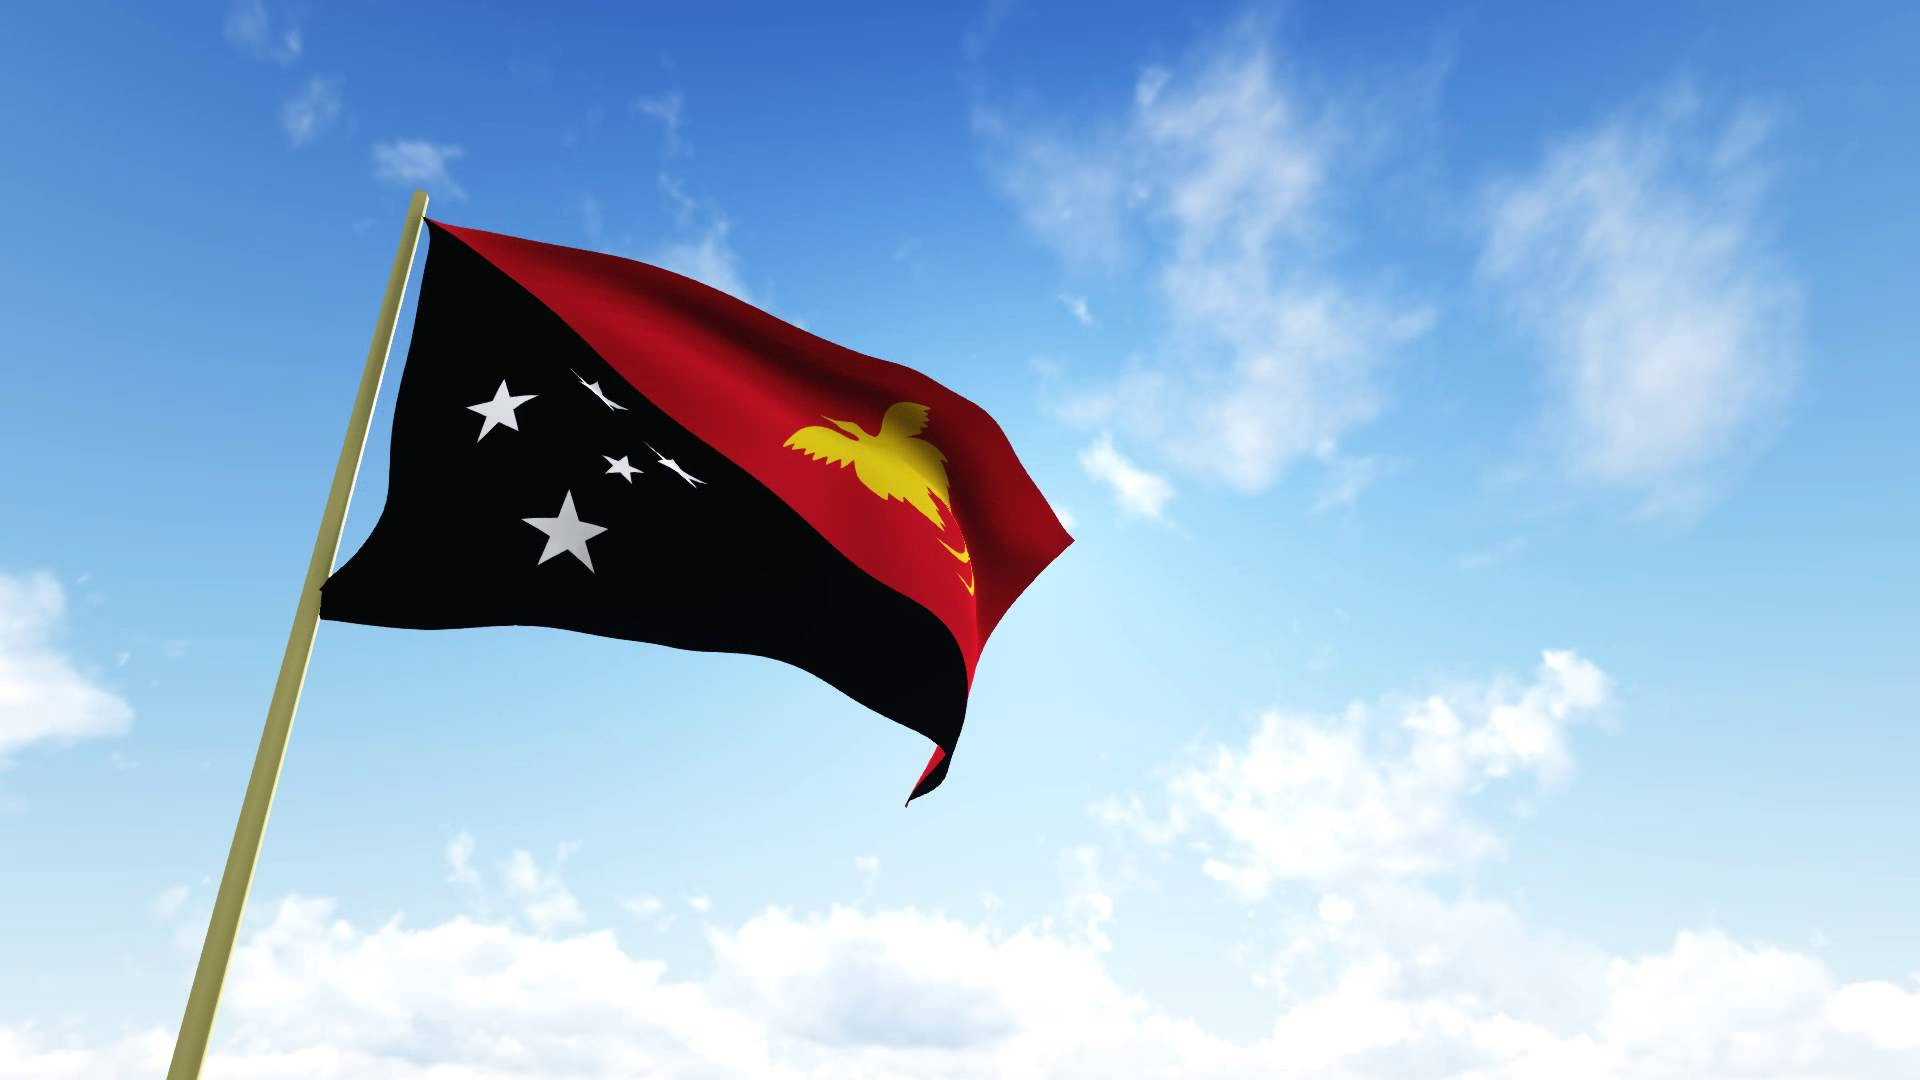 Flag of Papua New Guinea - Video HD 1080P - YouTube